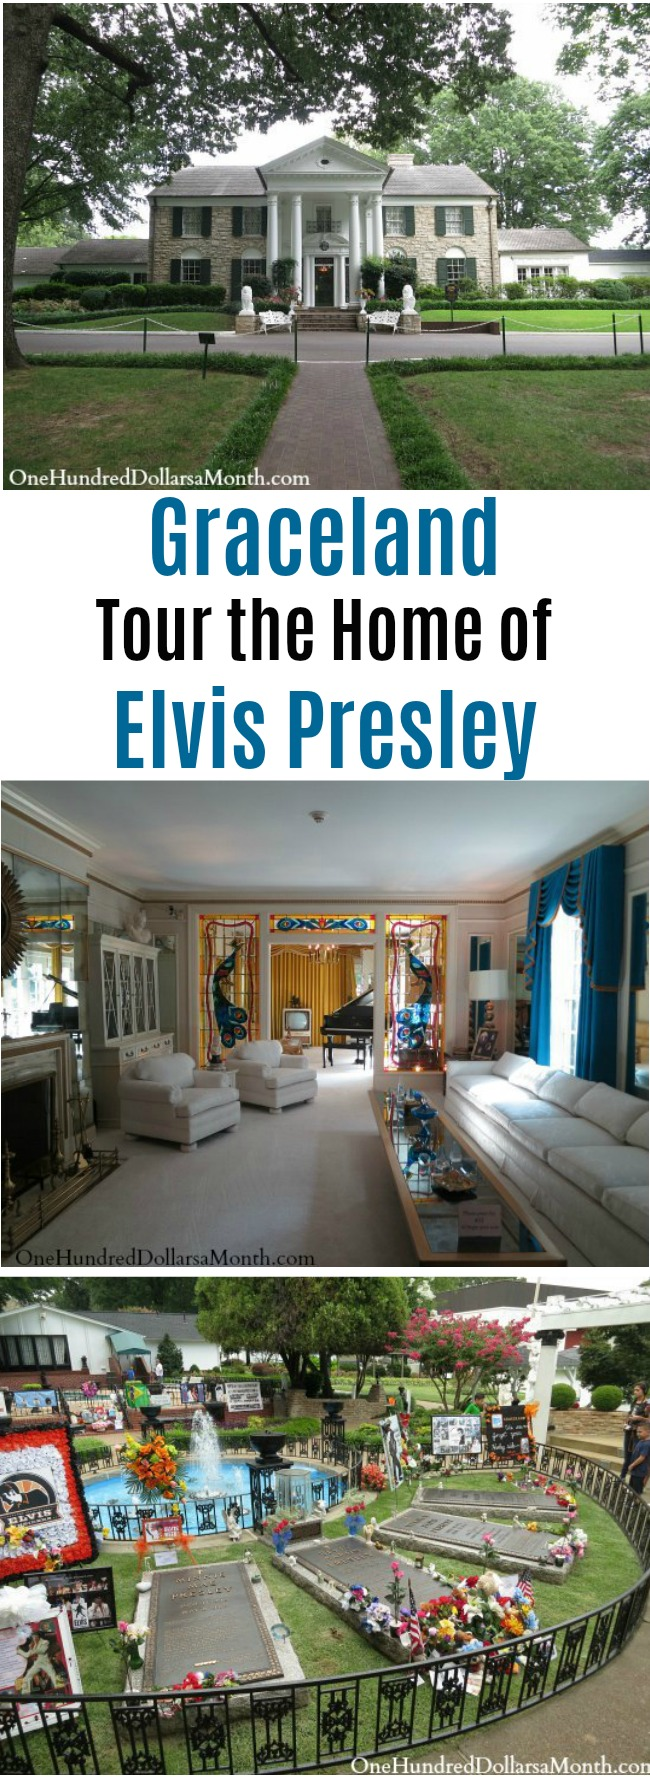 Graceland: Elvis' Home is Awesome